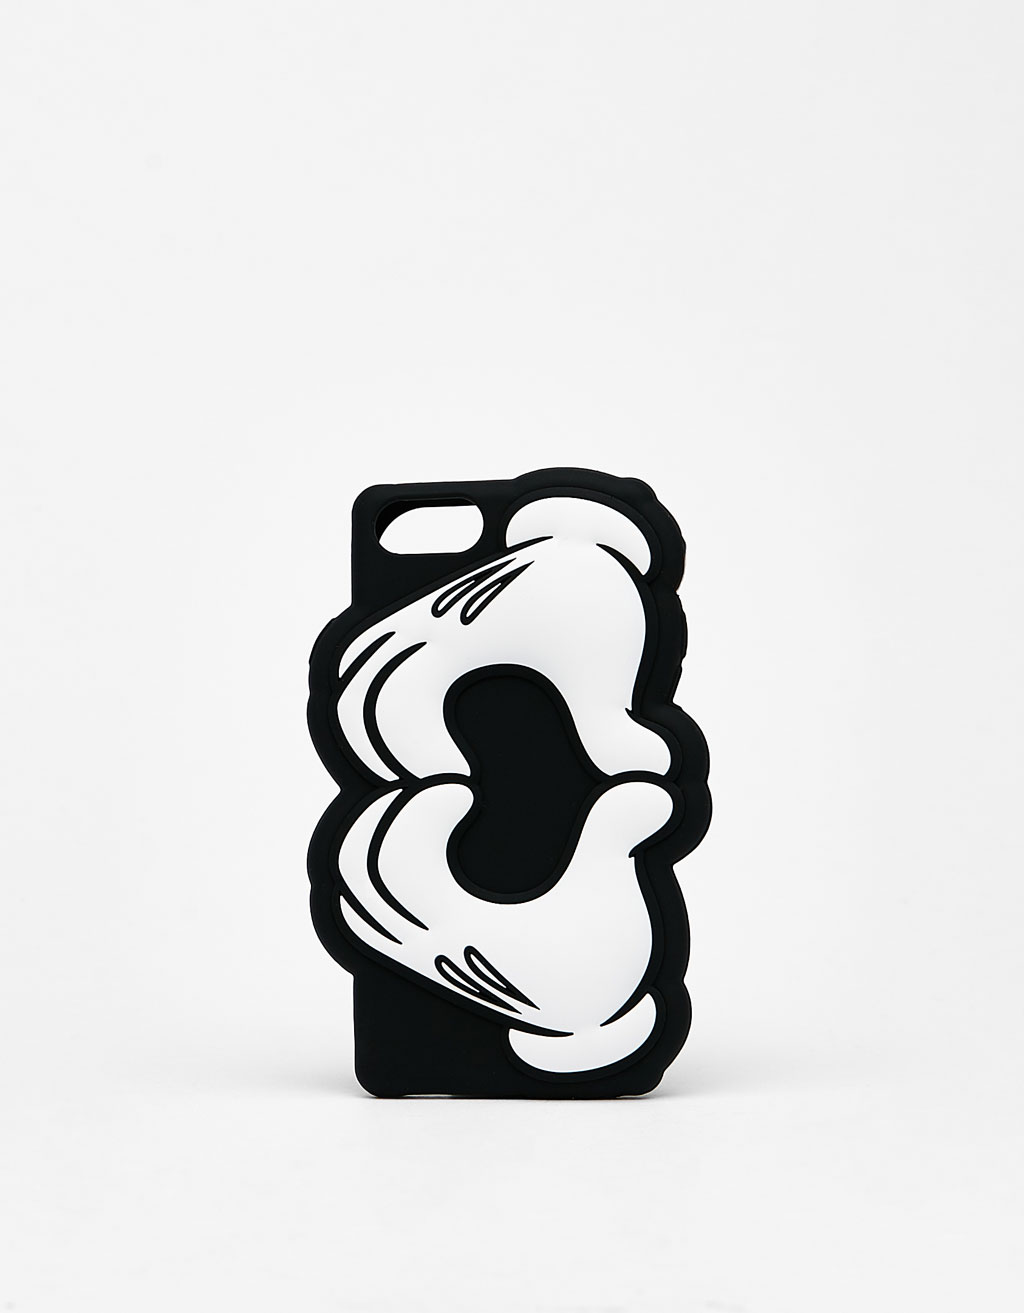 Mickey hands forming a heart iPhone 6/6s/7 case